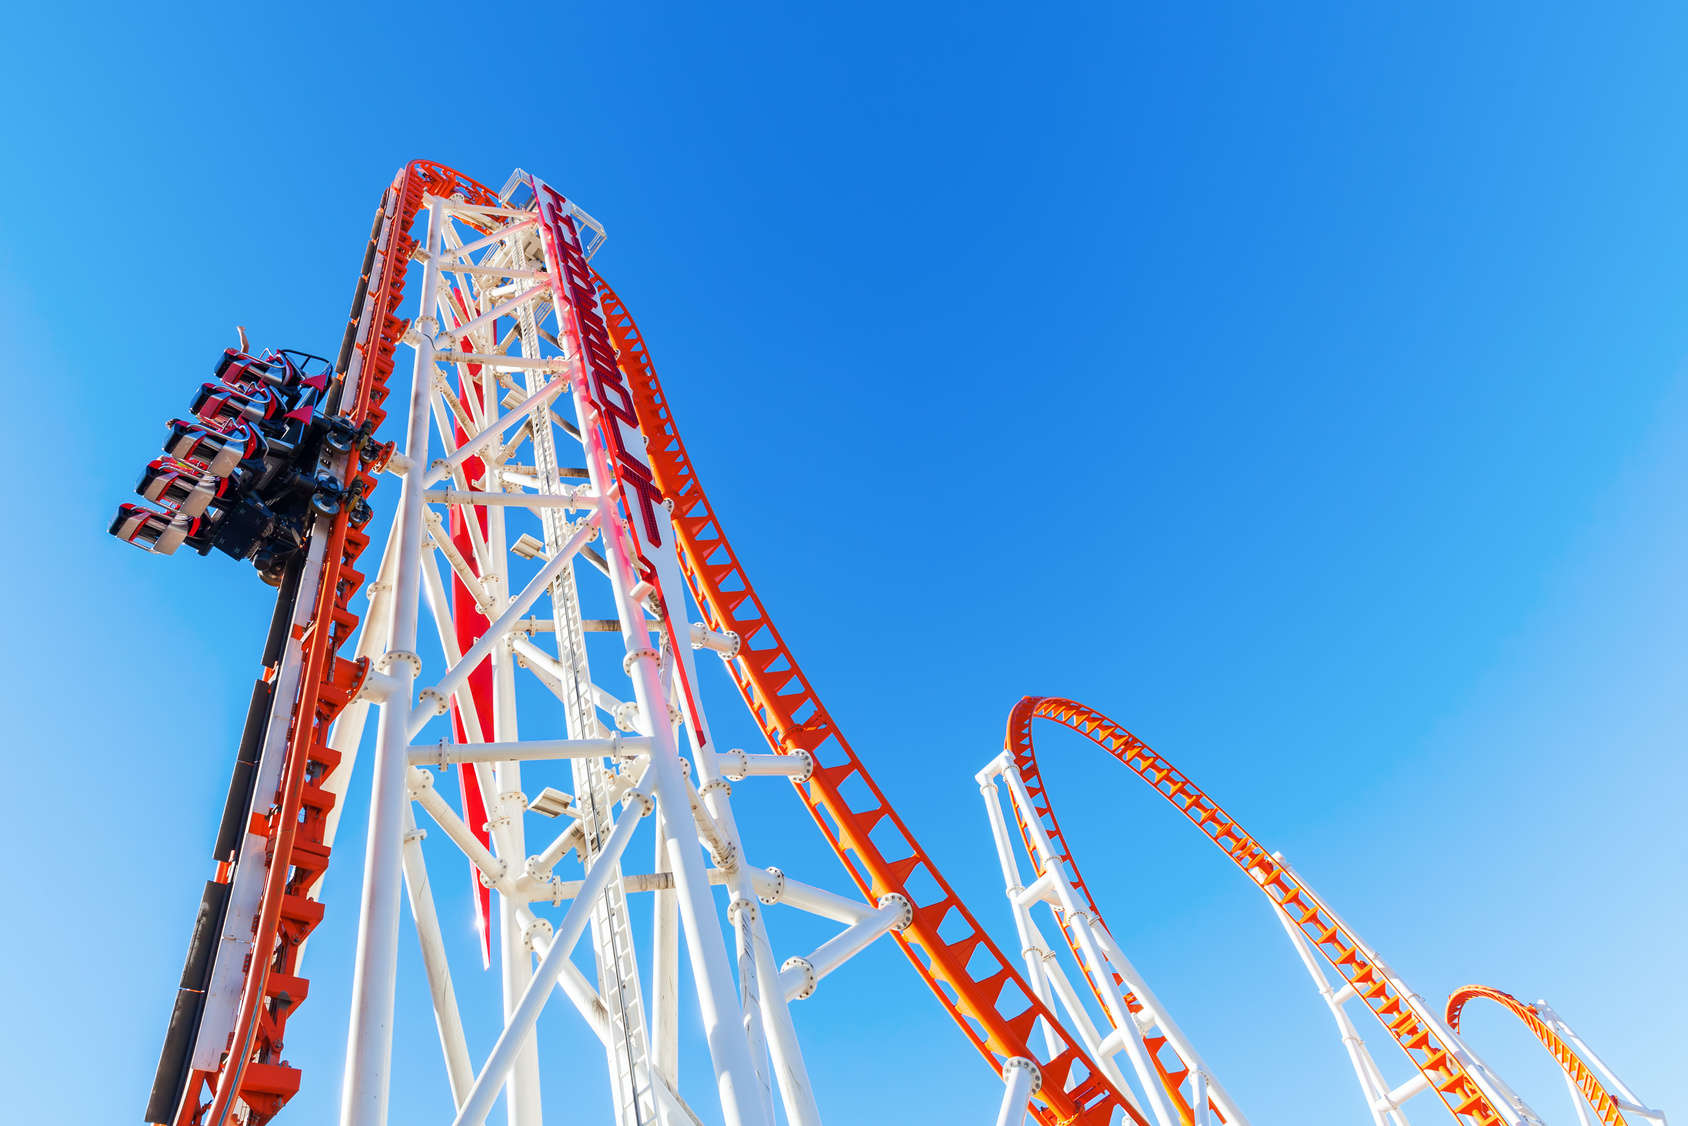 The Curse of the Income Roller Coaster